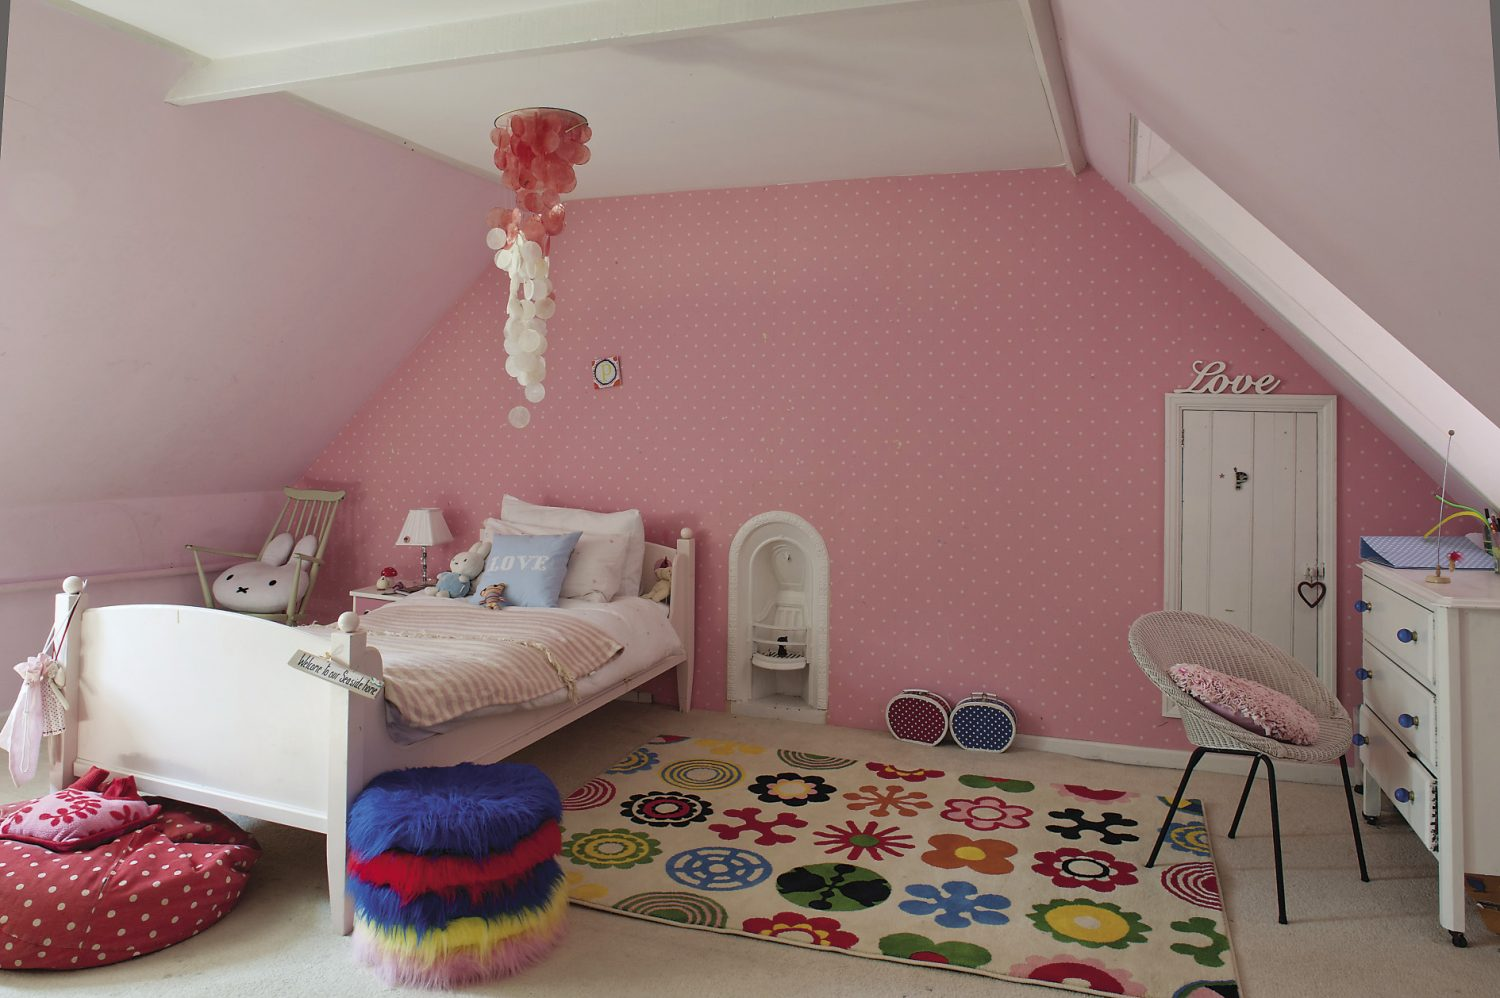 The older girls' rooms are up another flight of stairs in the eaves of the house and decorated in cheerful shades of pink, blue or orange